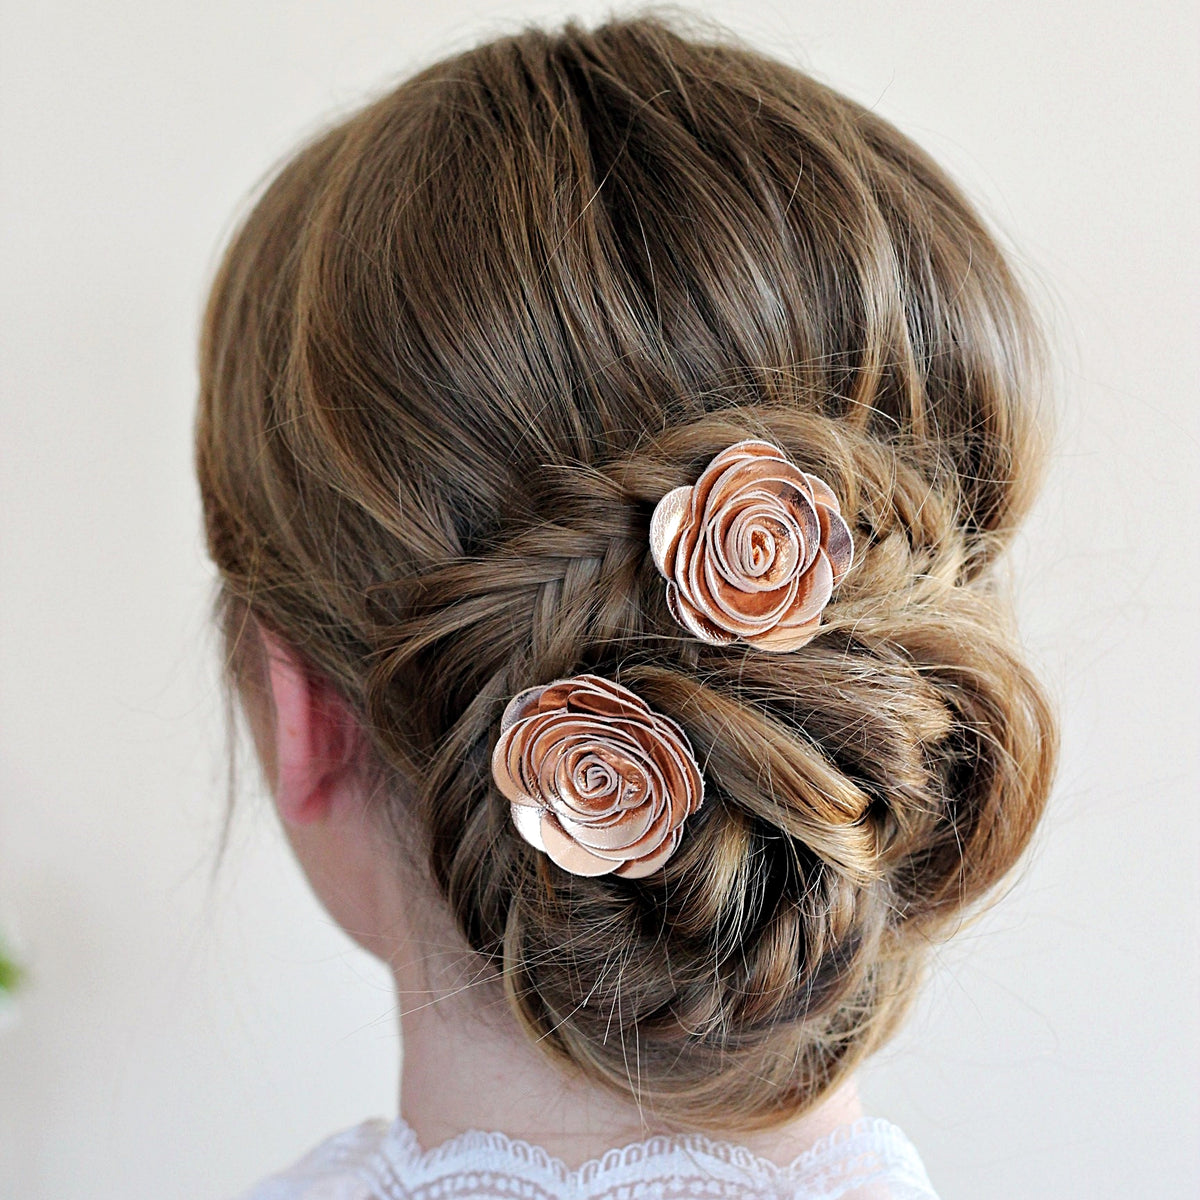 rose gold genuine leather hair rose flower bobby pin for bride, bridesmaids, copper wedding gift set